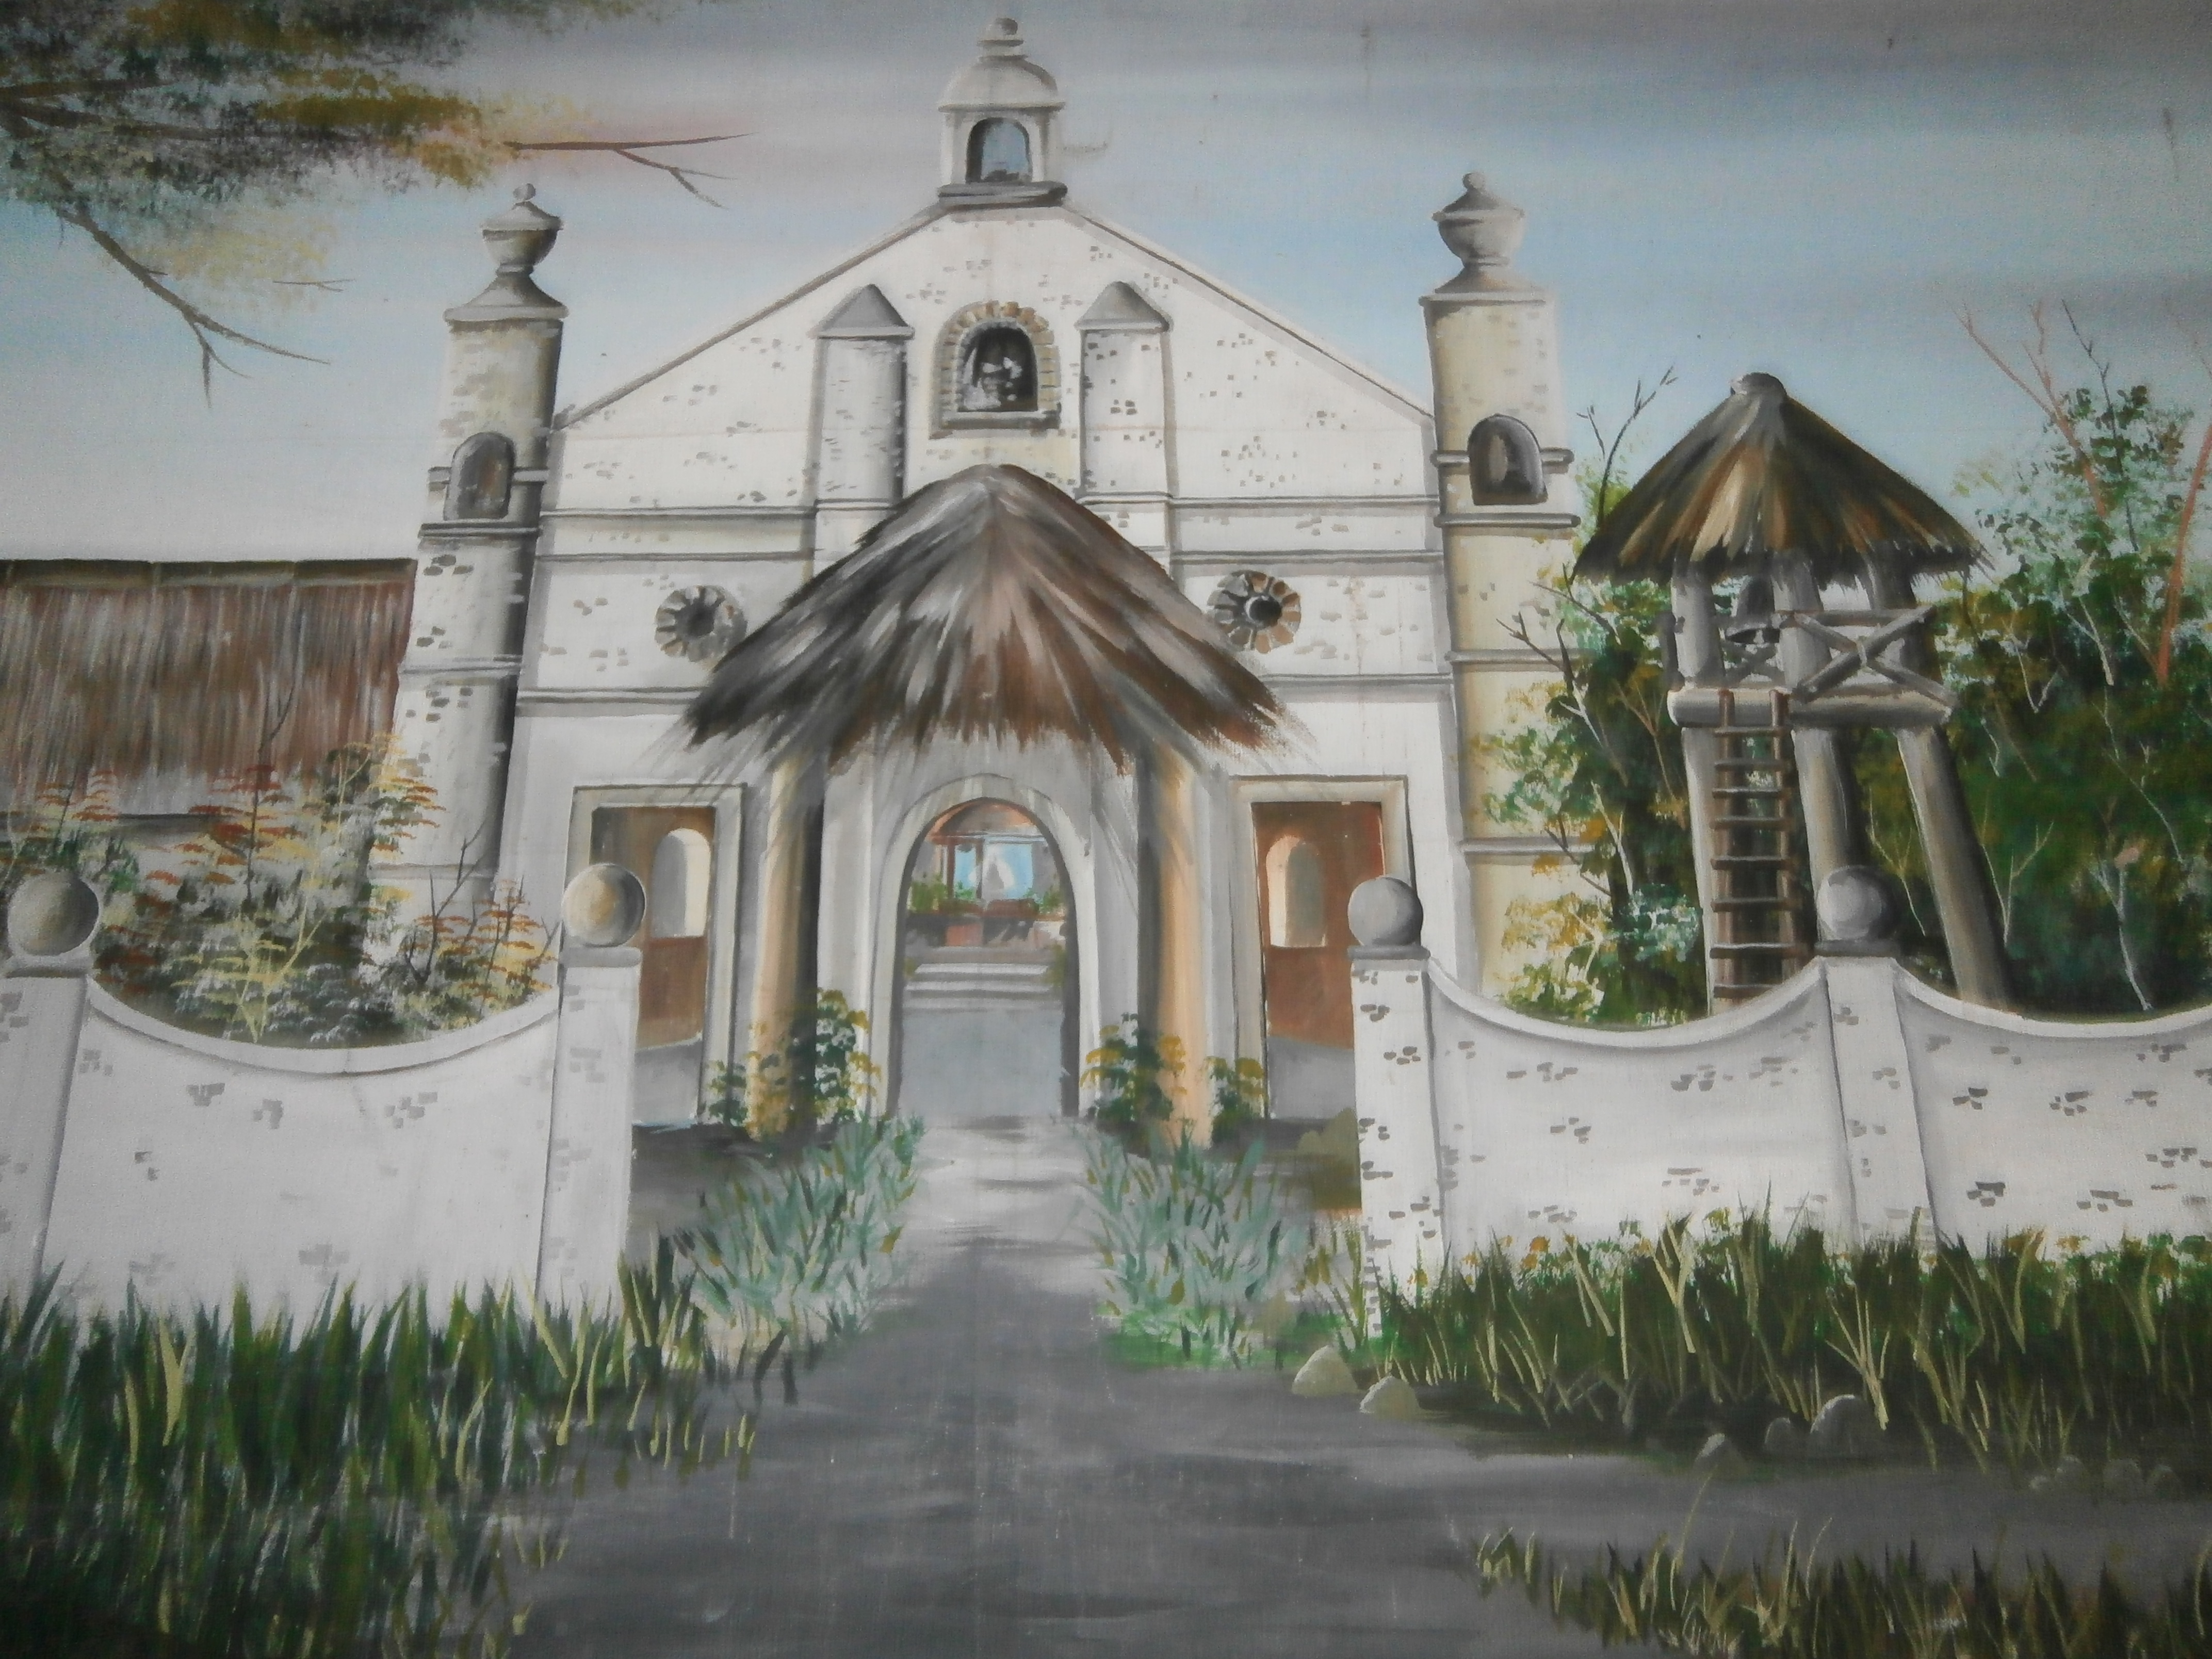 history of peñafrancia Rice fields recovered and everyone had good harvest other connections of the municipality to the peñafrancia devotion were don angel rosales's contribution to the beautification of the shrine in 1865 and the publication of apolonio sto tomas's verses on story of the our lady in 1933.